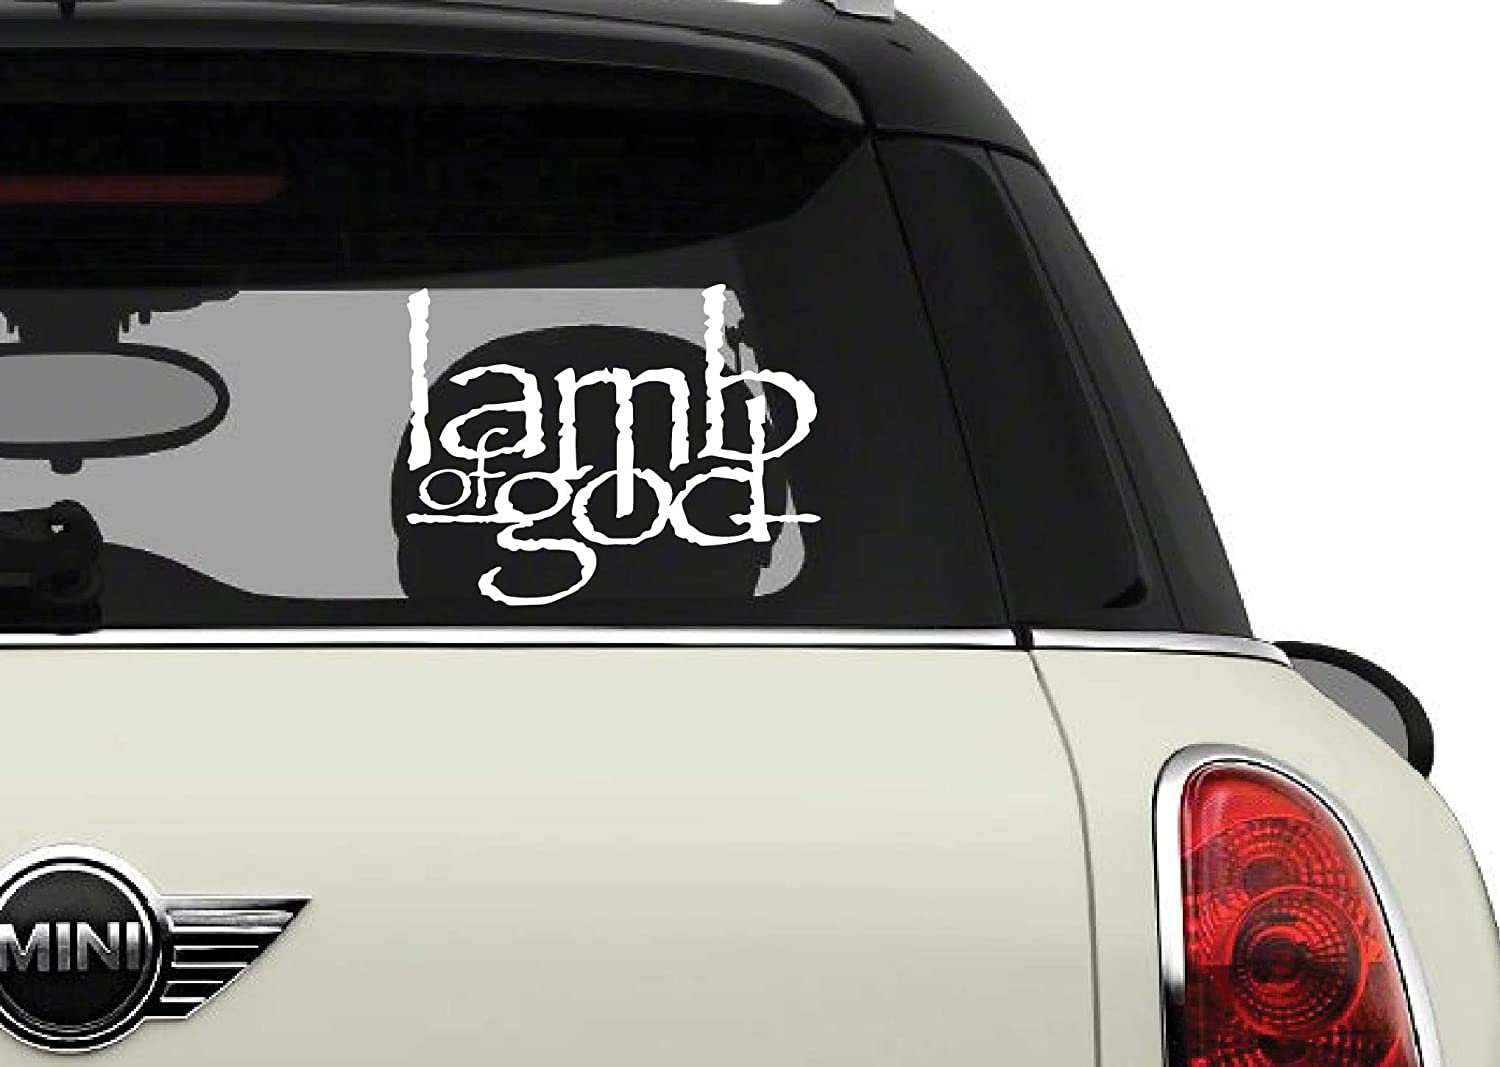 COOPER TIRES Decal Sticker Toolbox Laptop Vehicle Window